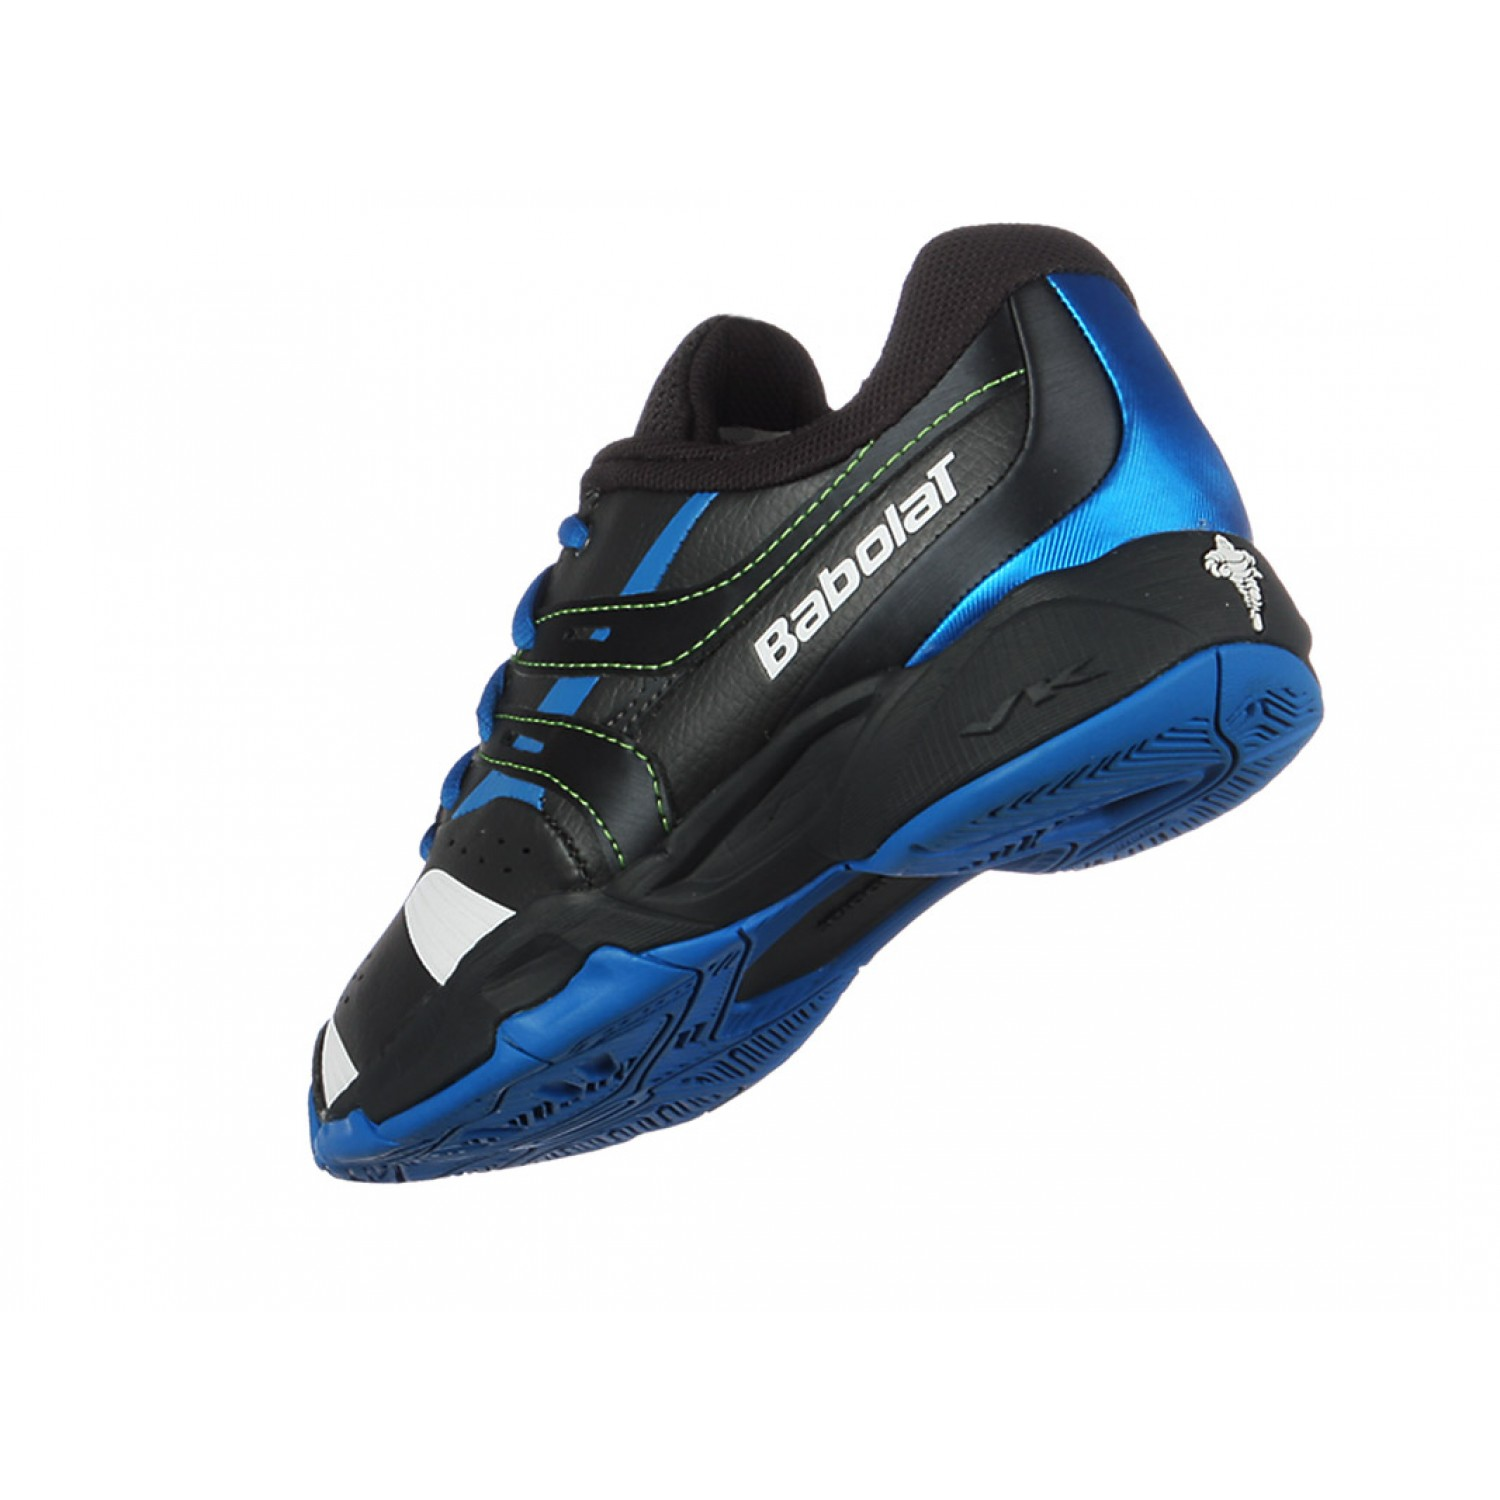 BABOLAT V-PRO ALL COURT JUNIOR 33-38 NEU 55€ tennis propulse drive storm team